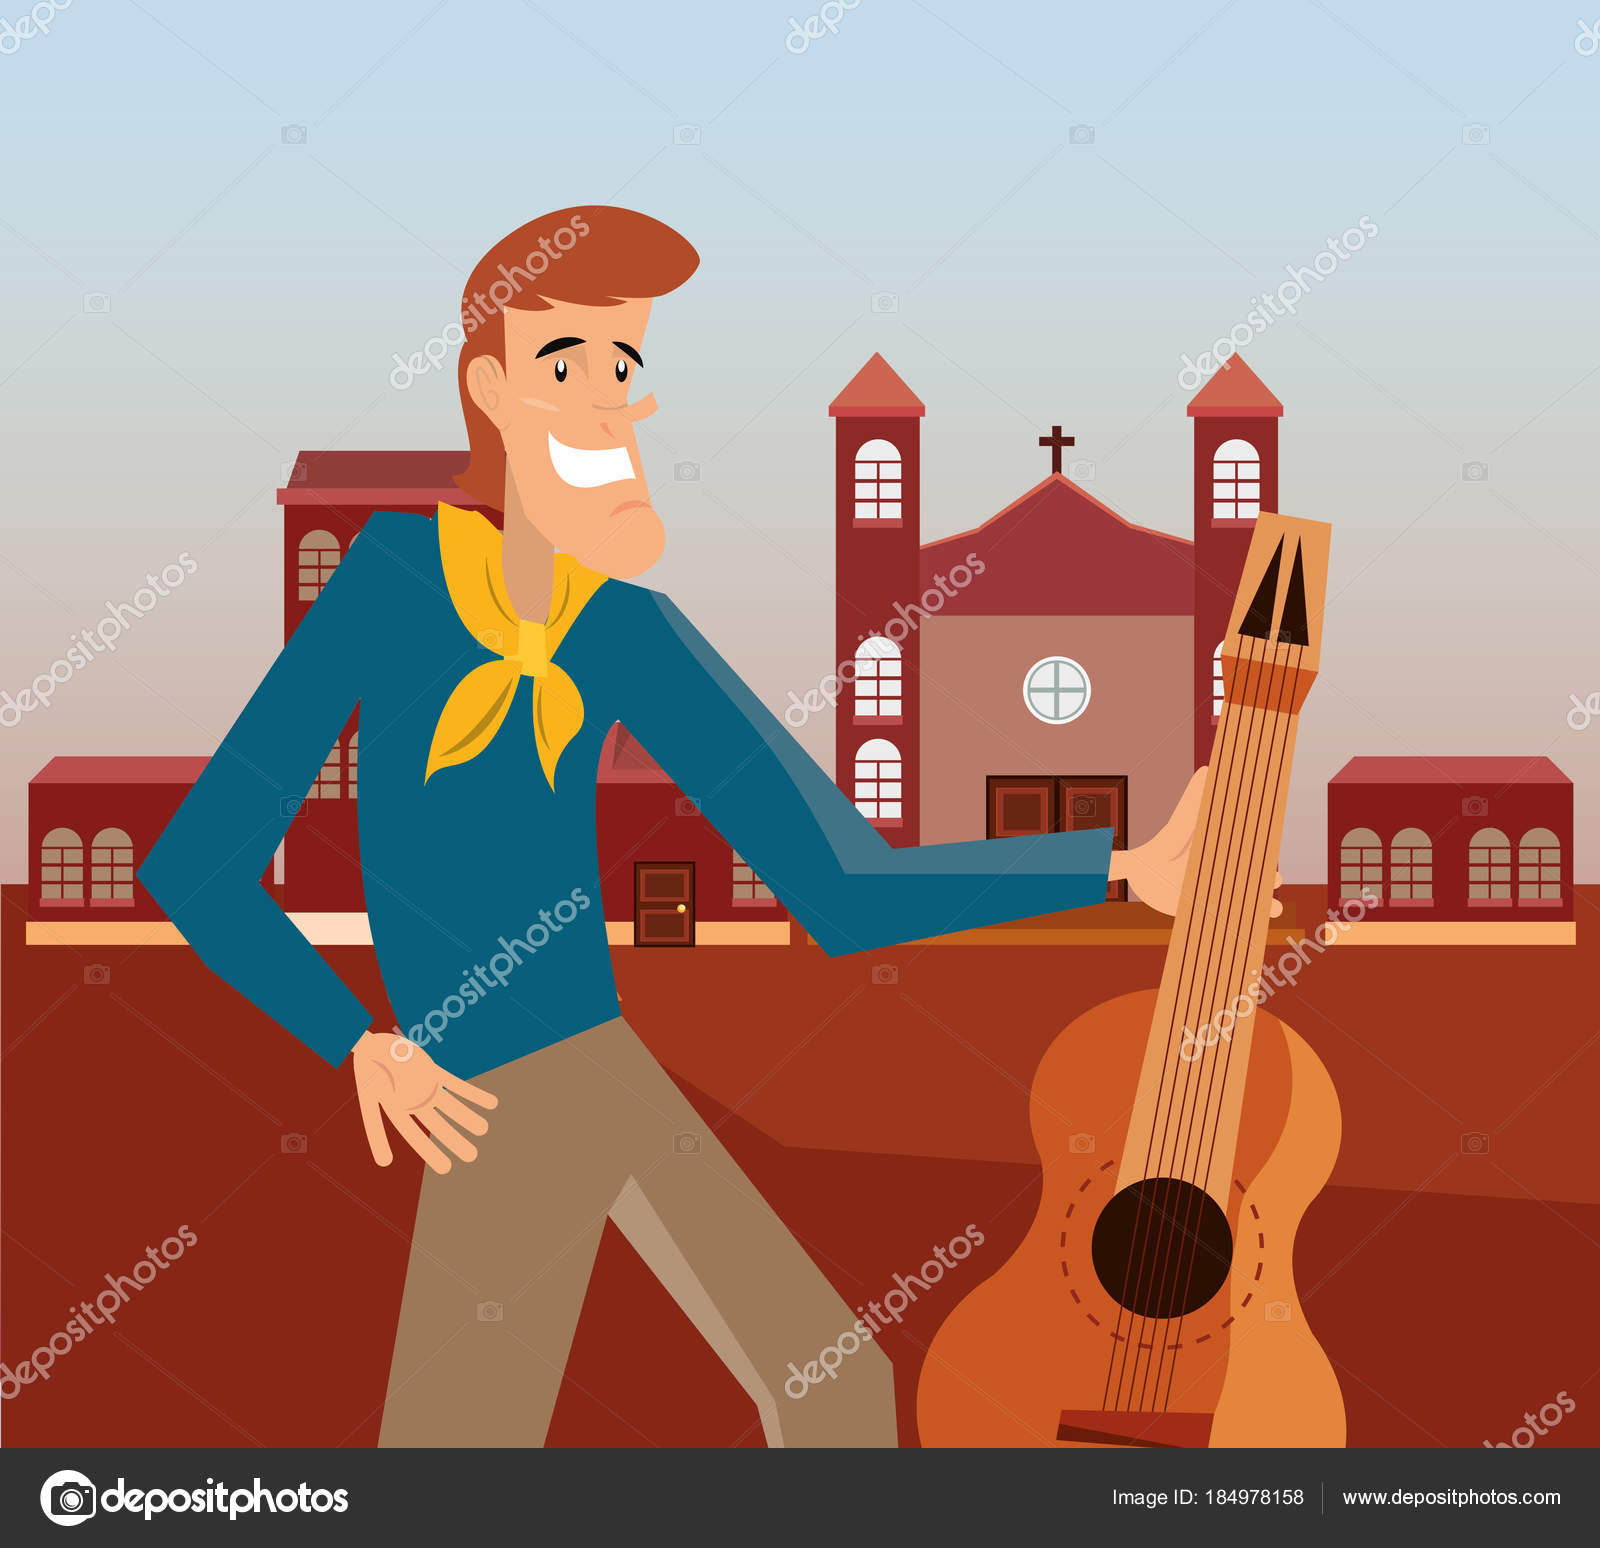 Festa Junina Design Stock Vector C Djv 184978158